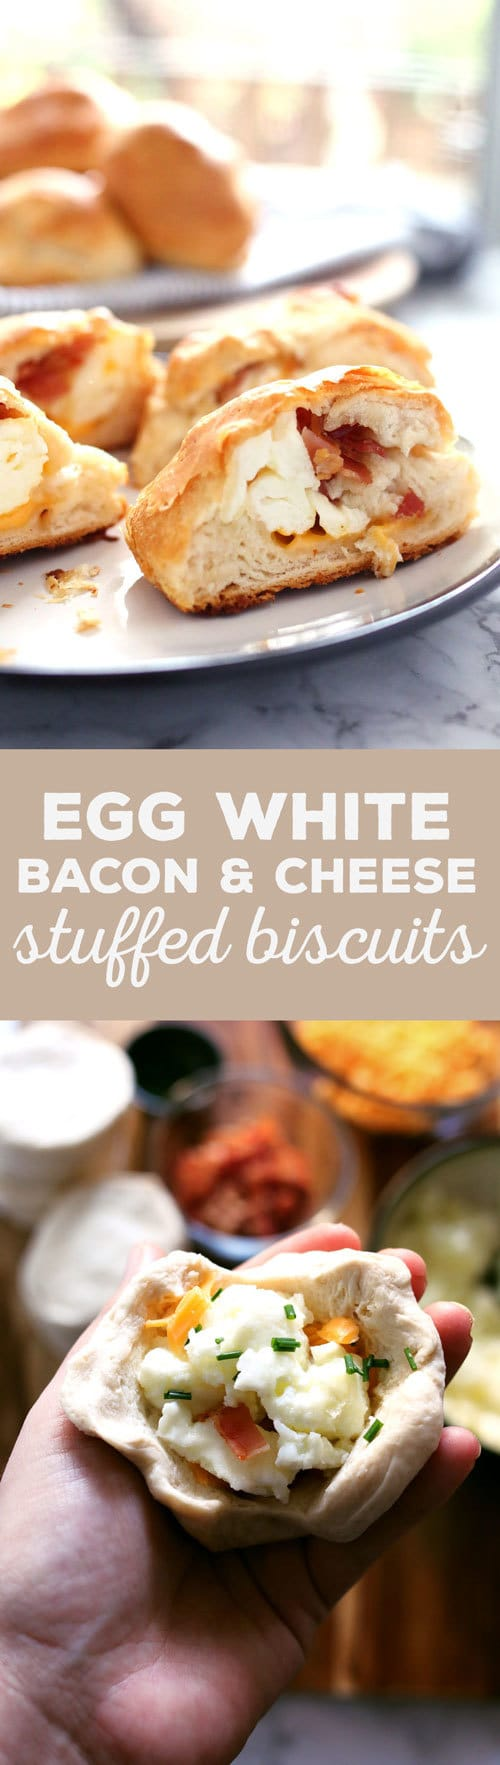 These egg white bacon cheese stuffed biscuits are delicious and so easy to make! They are the perfect grab-and-go breakfast for busy mornings. | honeyandbirch.com